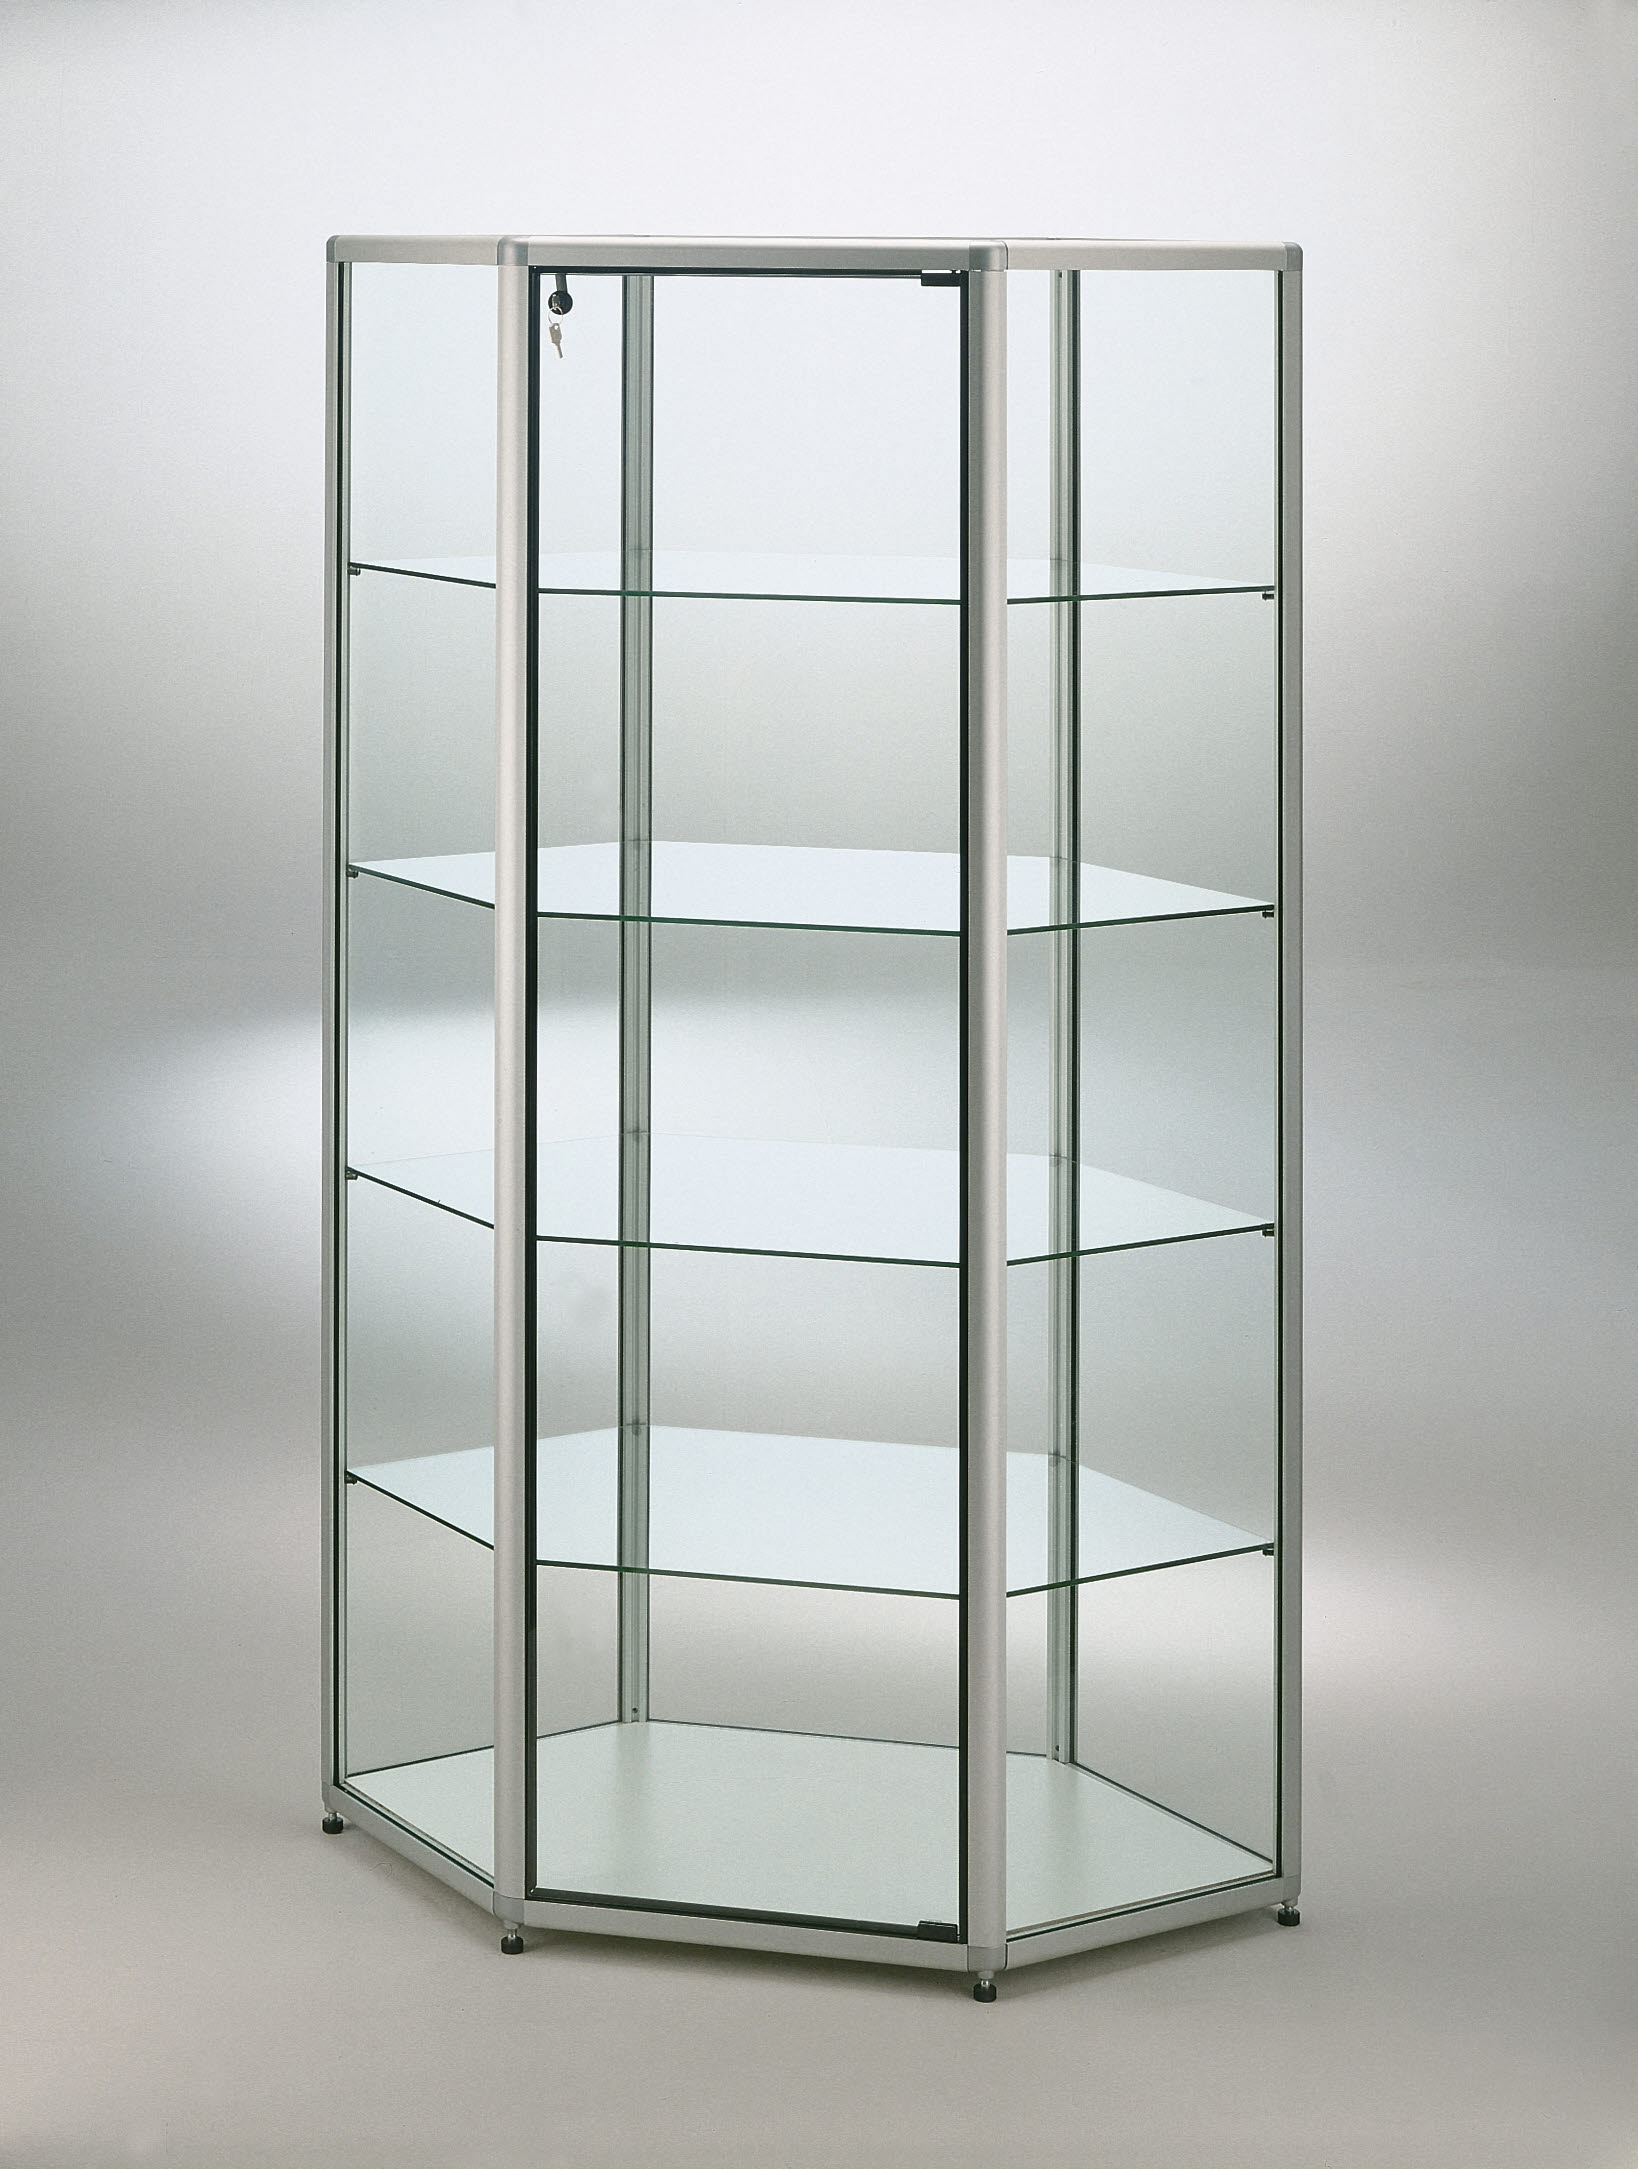 vitrinen vitrine glasvitrine eckvitrine tischvitrine sammlervitrine. Black Bedroom Furniture Sets. Home Design Ideas